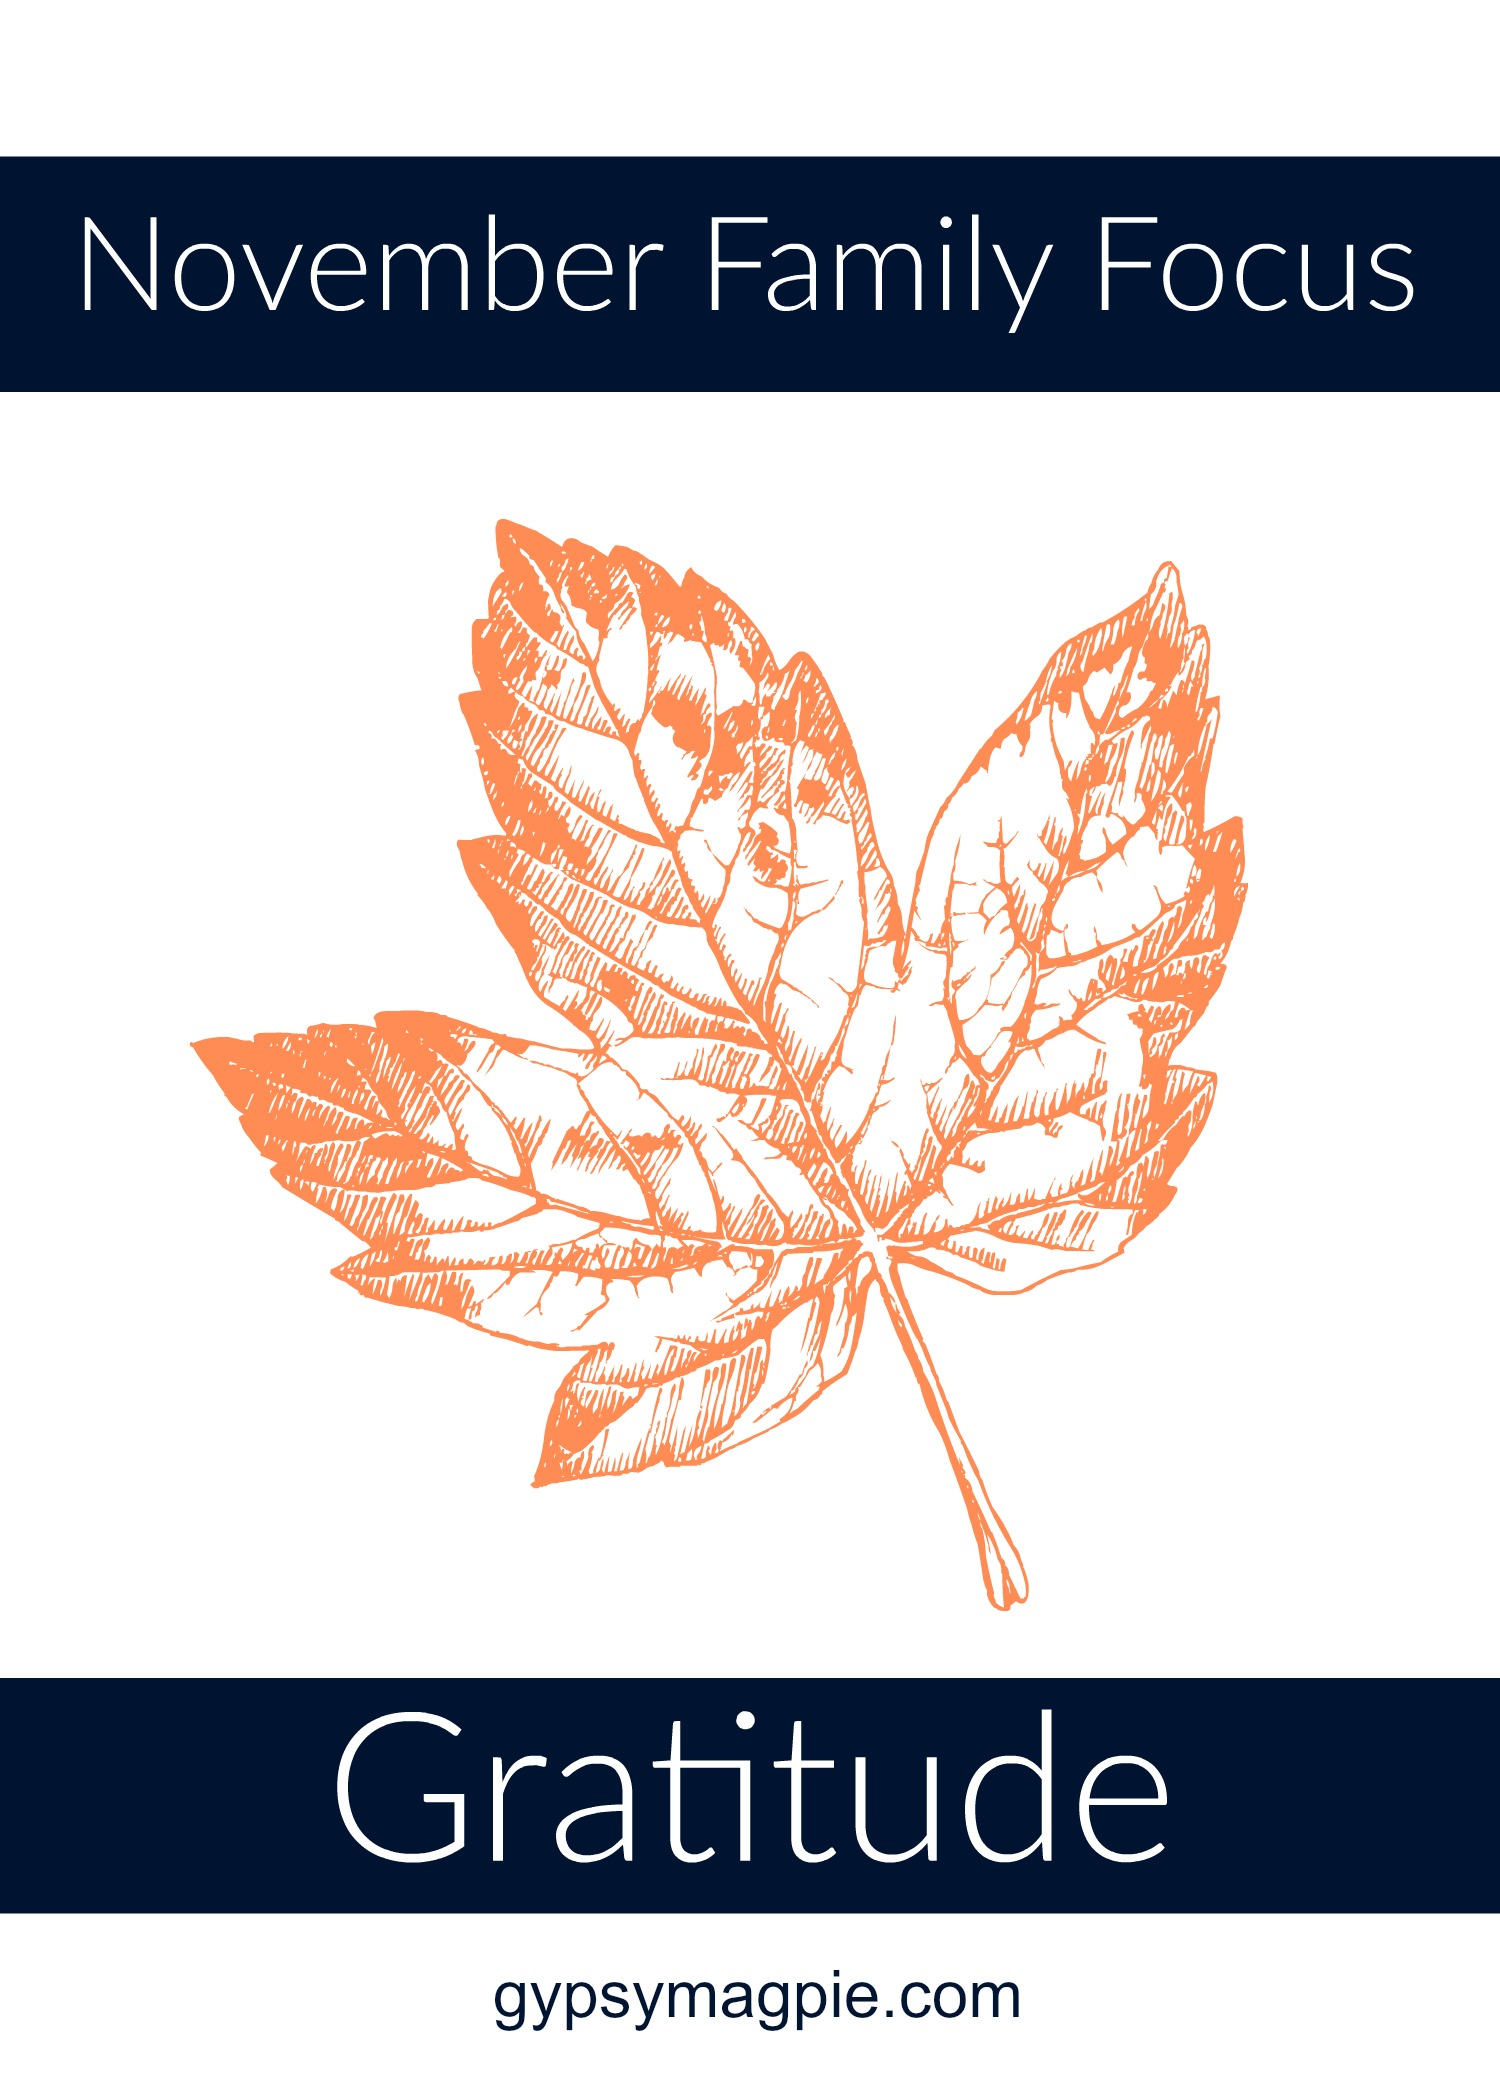 November Family Focus: Gratitude {Gypsy Magpie}